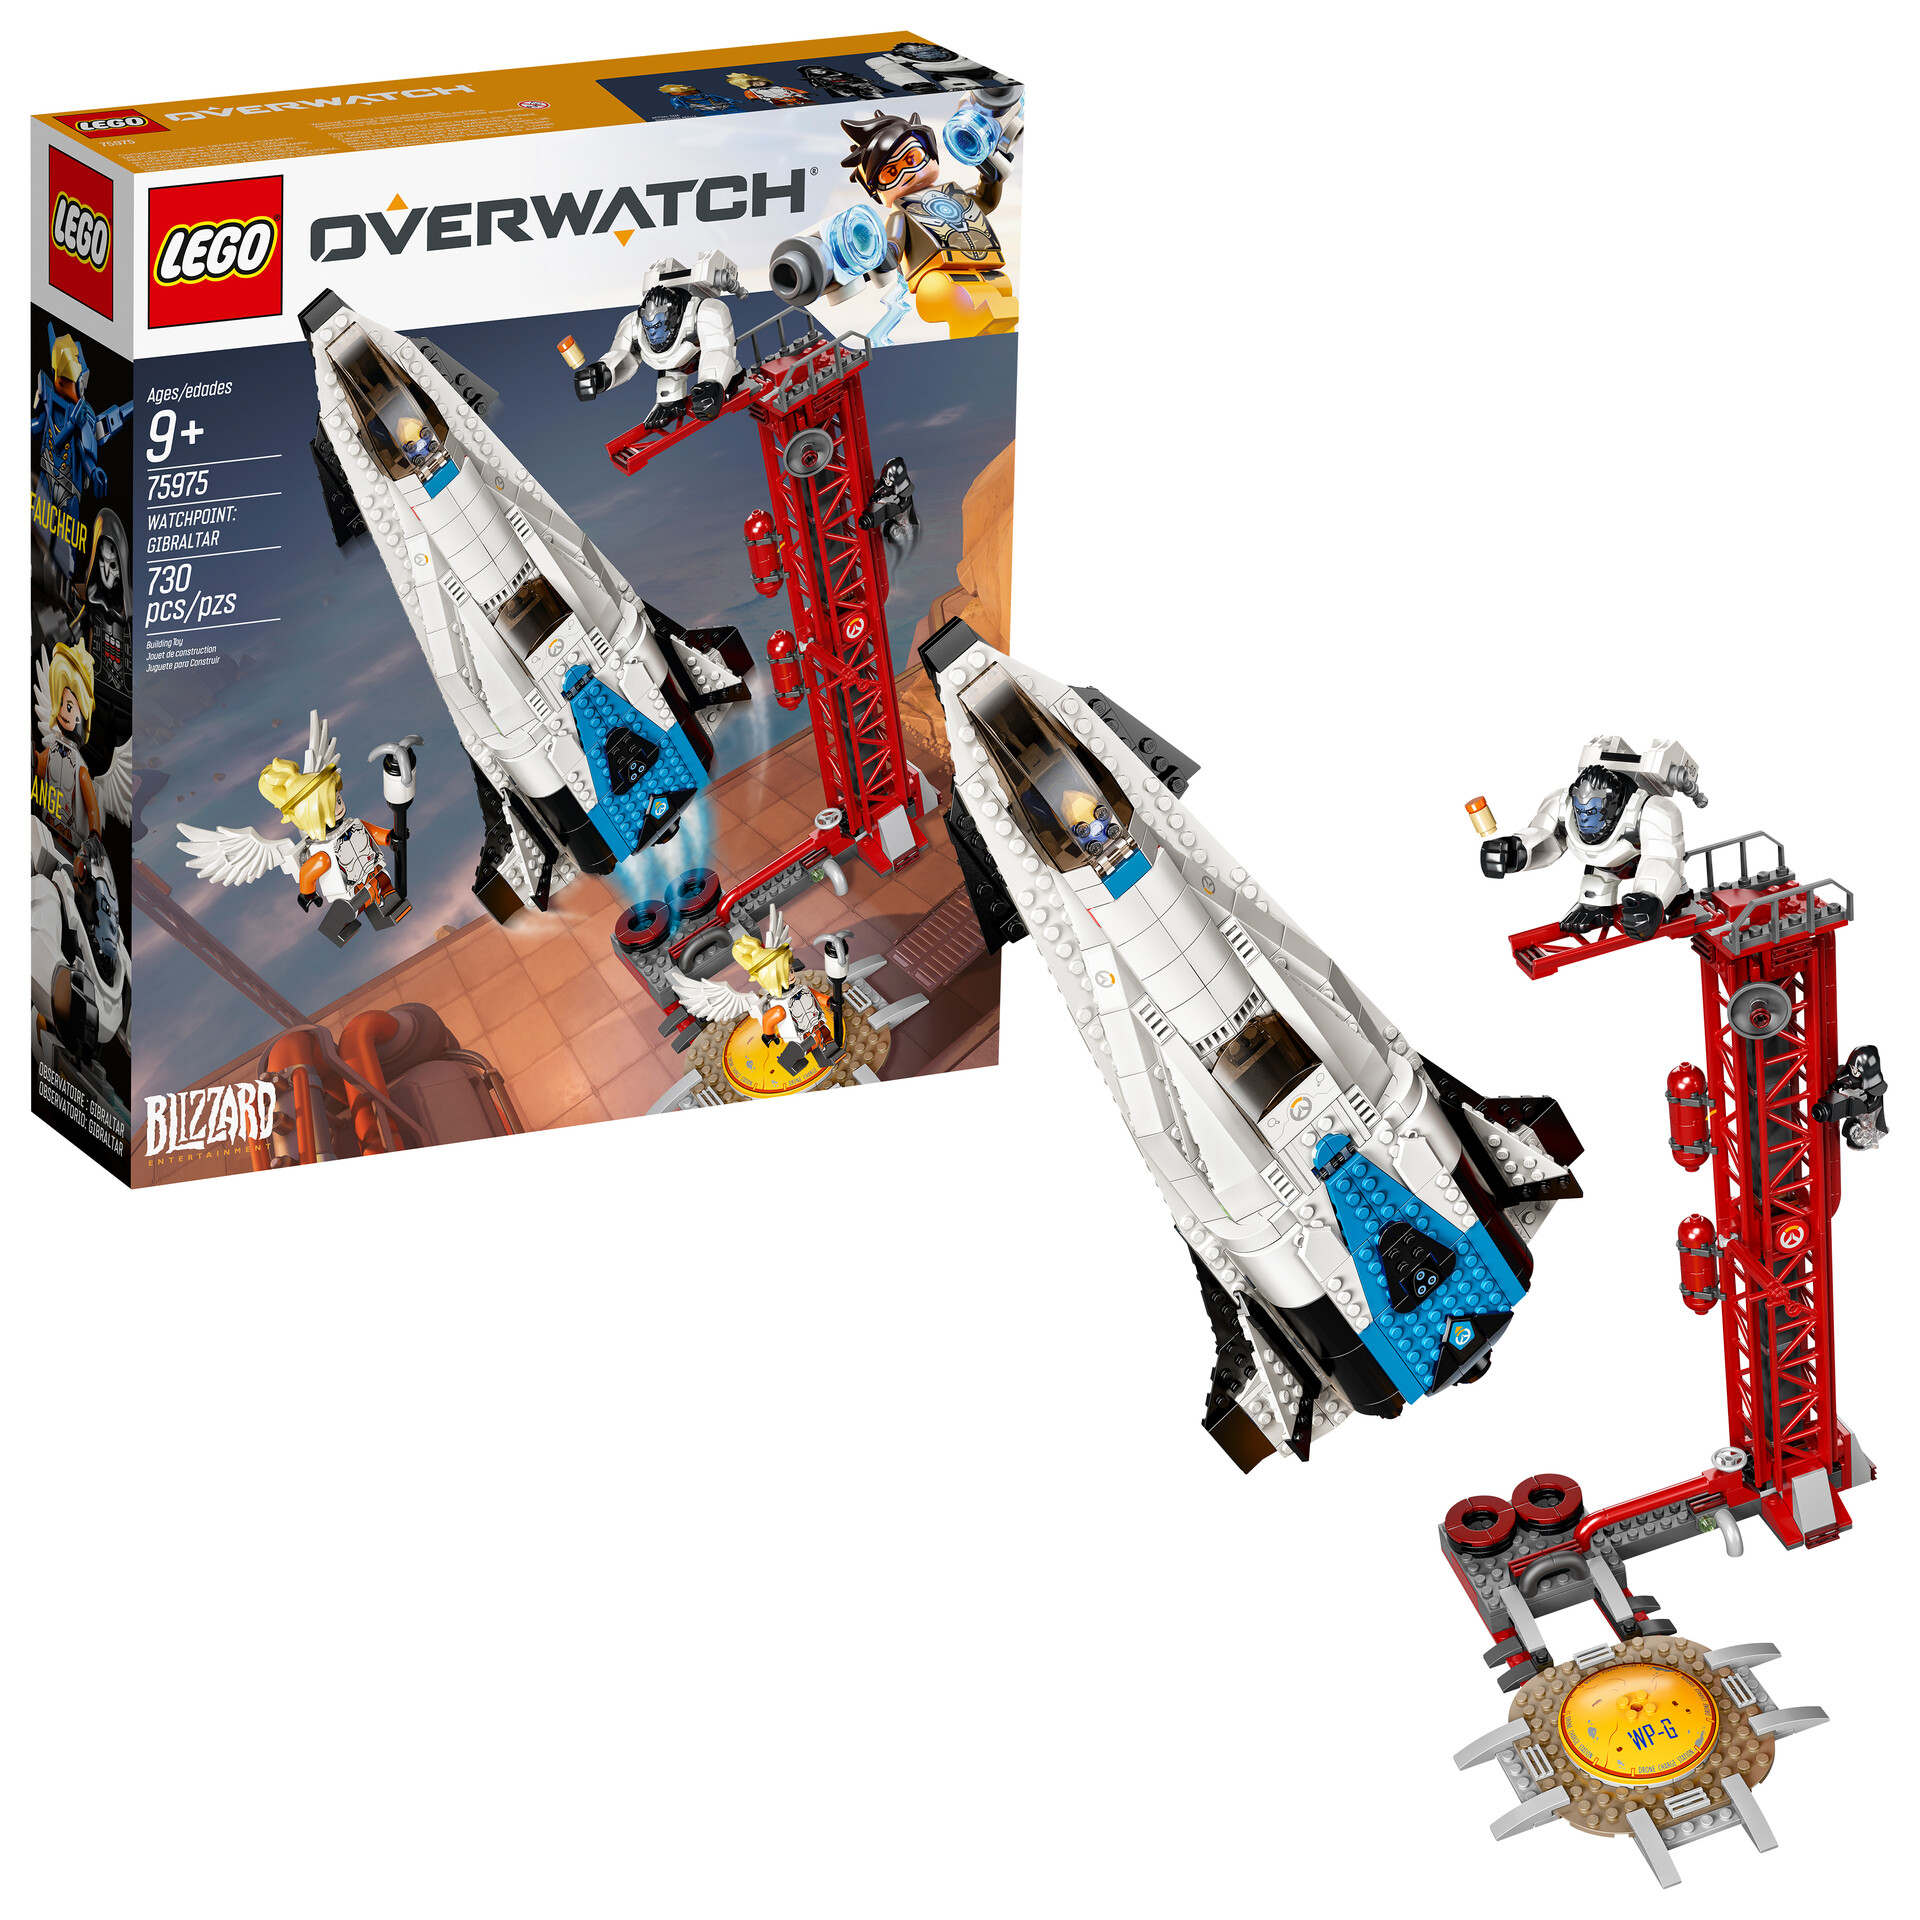 EXTRA: